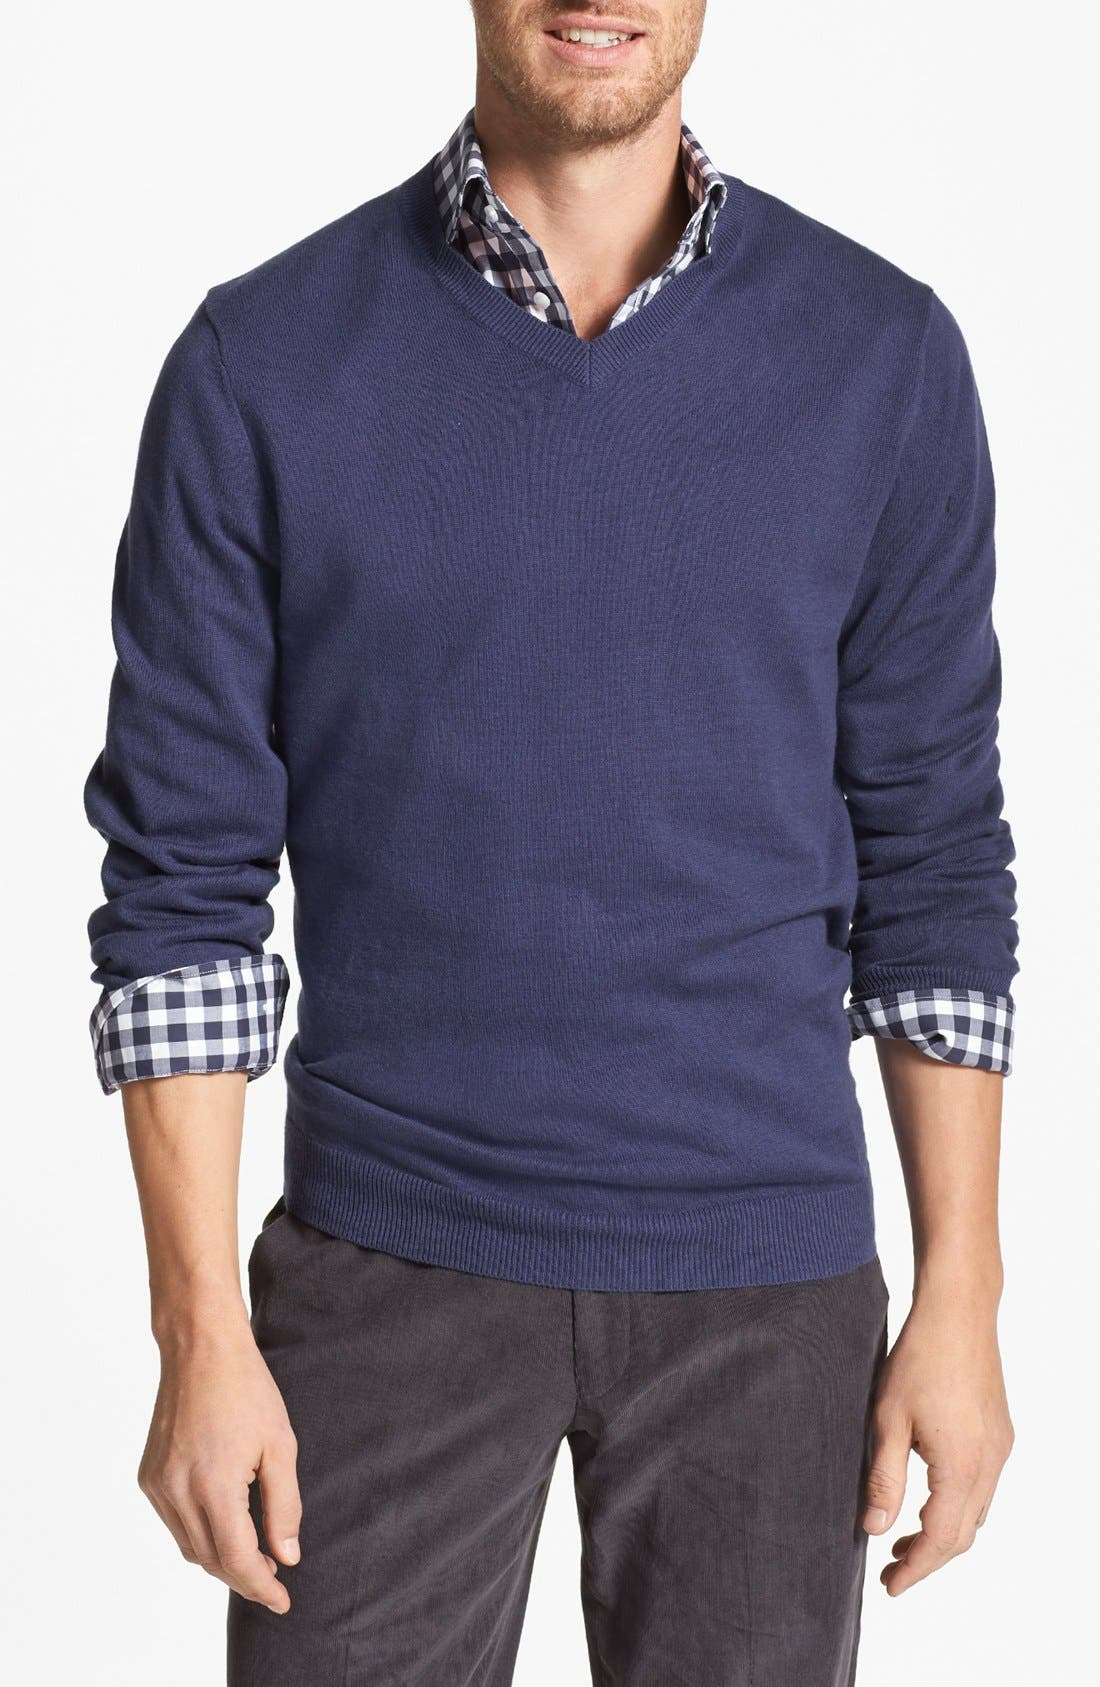 Alternate Image 1 Selected - Wallin & Bros. Trim Fit V-Neck Cotton & Cashmere Sweater